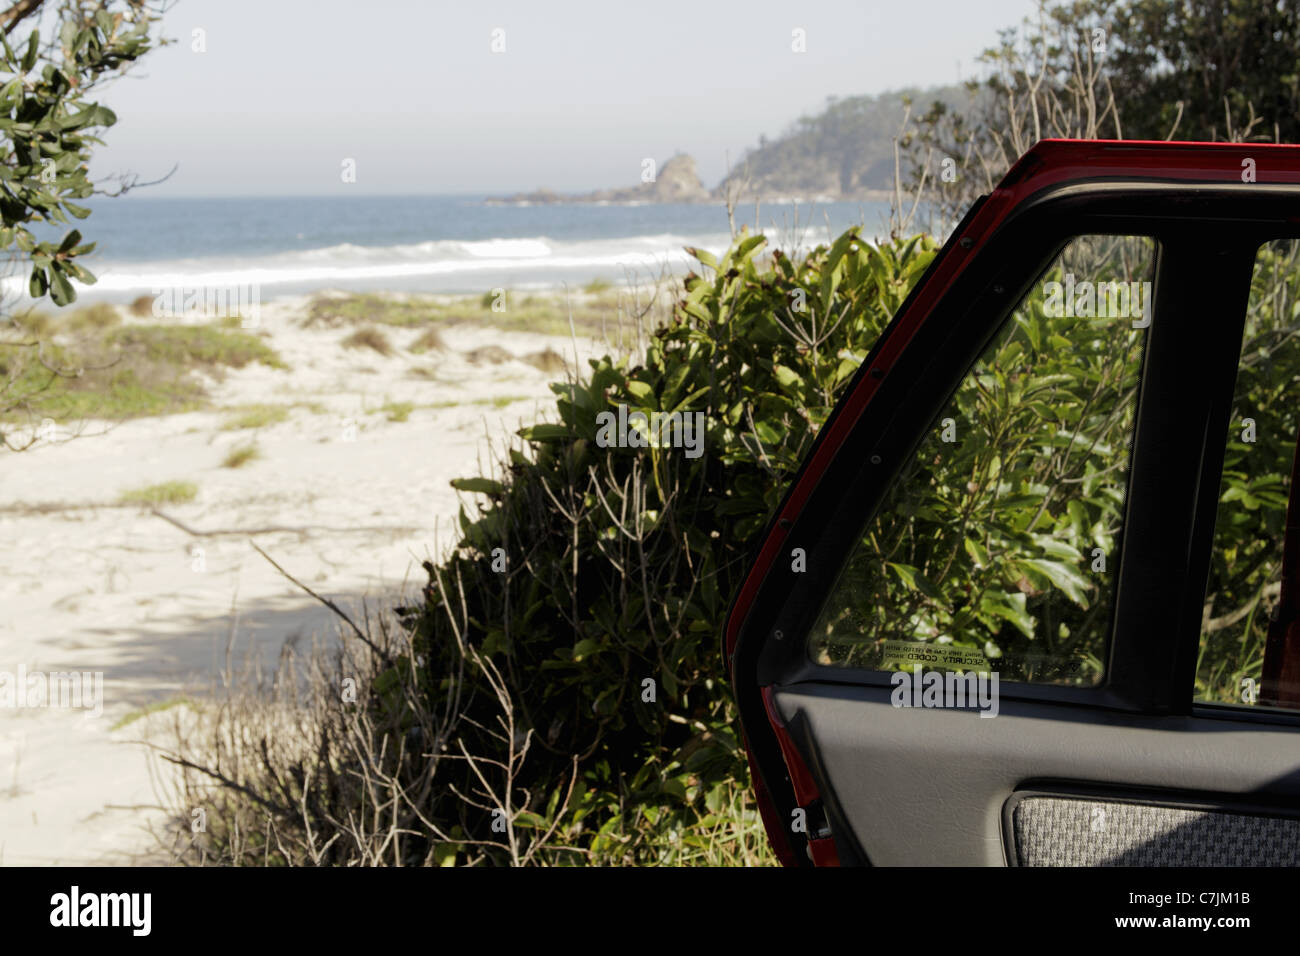 Open car door parked near beach - Stock Image